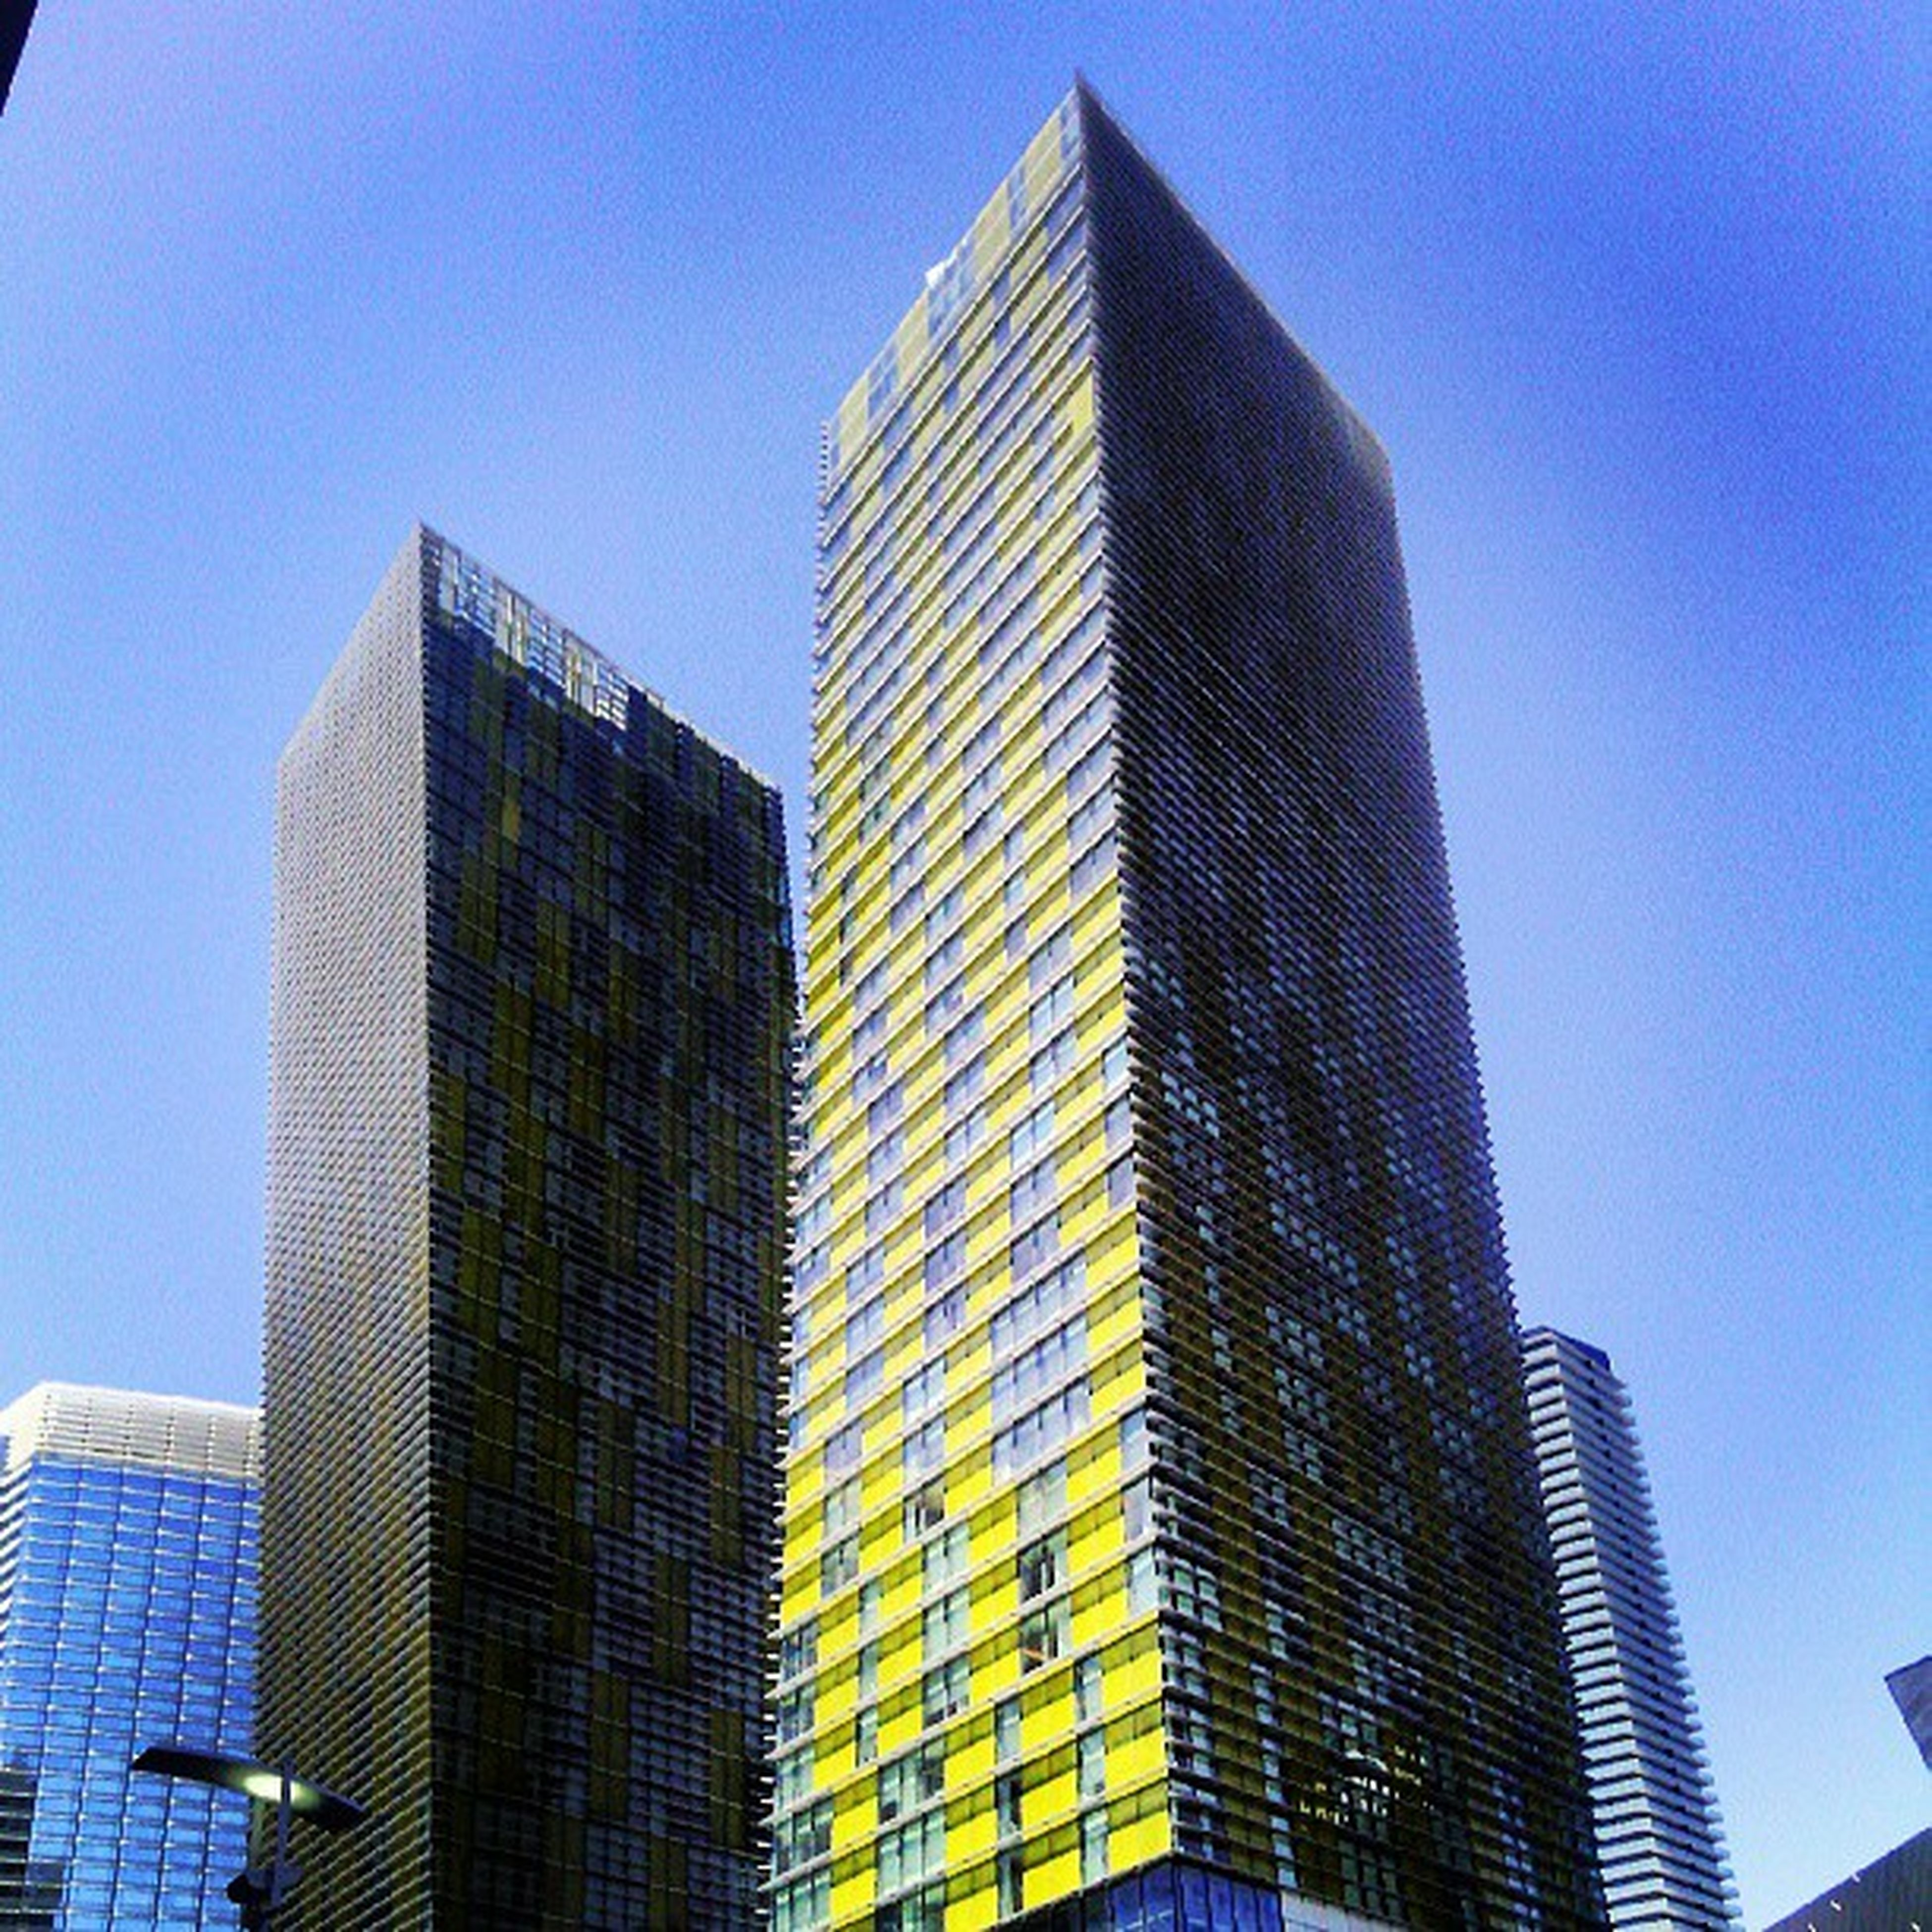 building exterior, architecture, skyscraper, built structure, tall - high, modern, low angle view, office building, city, tower, clear sky, blue, tall, building, financial district, glass - material, city life, urban skyline, development, sky